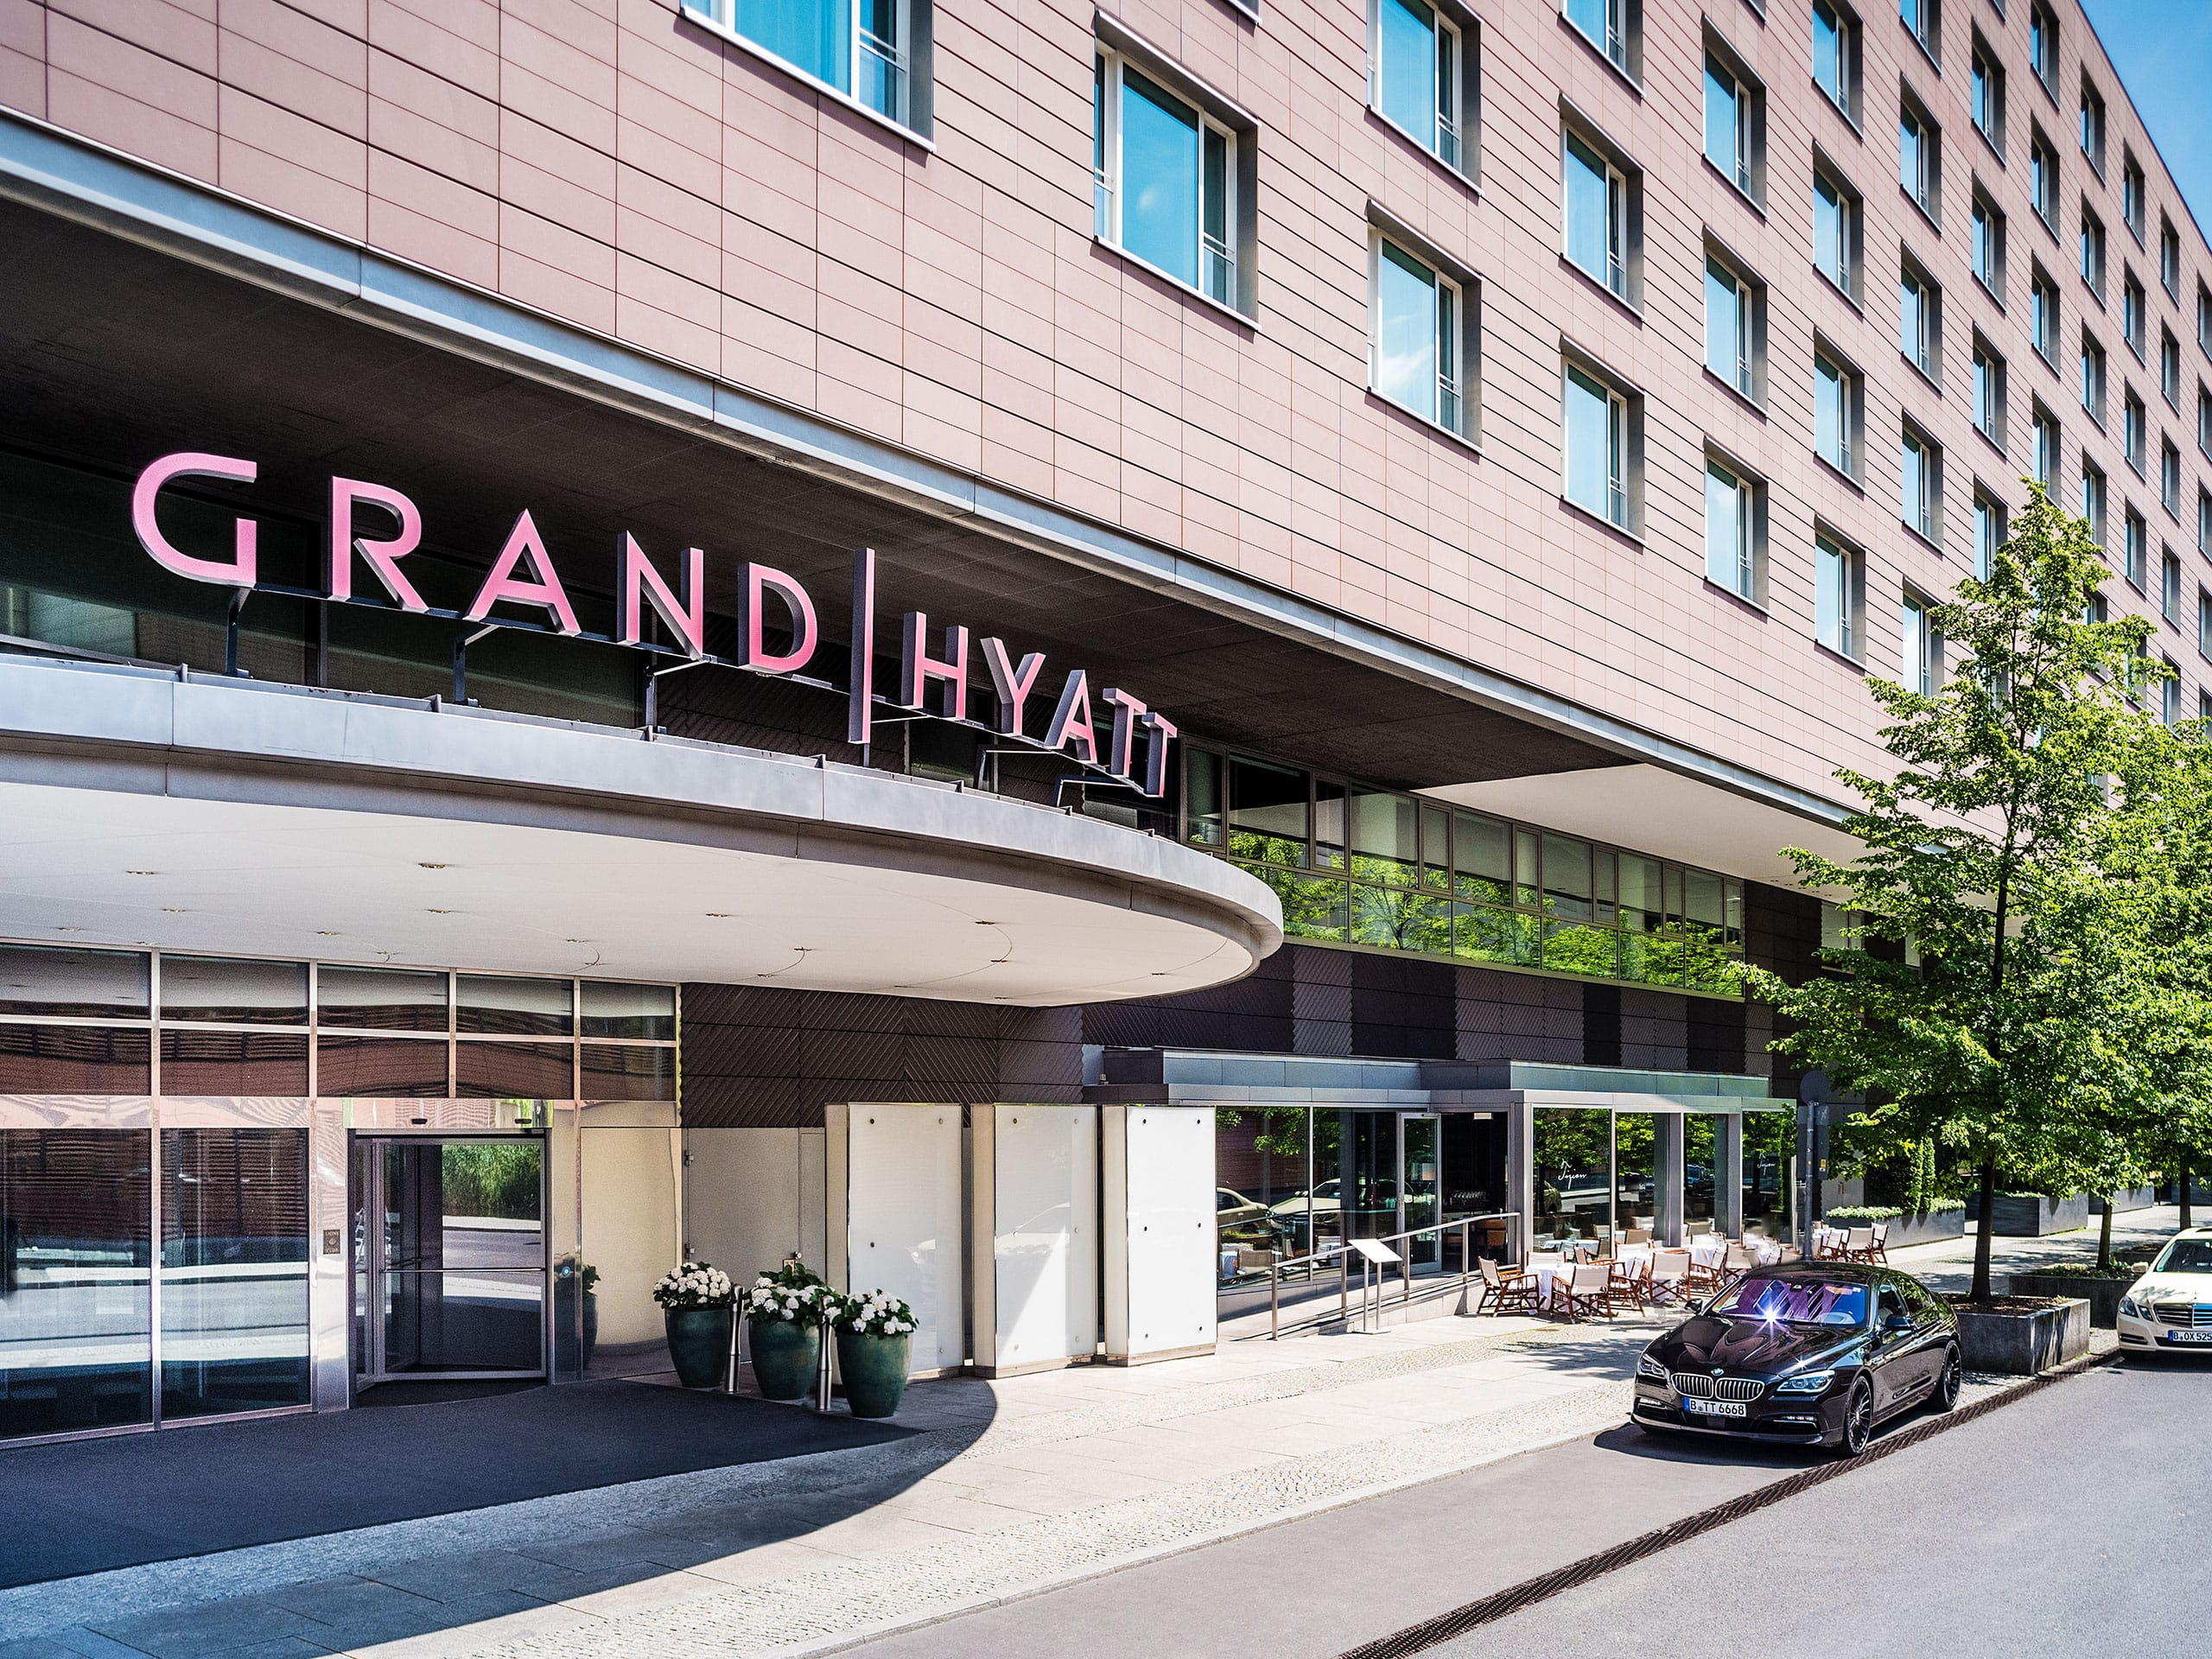 Bus Erfurt Berlin 5 Star Luxury Hotel In Berlin Mitte Germany Grand Hyatt Berlin